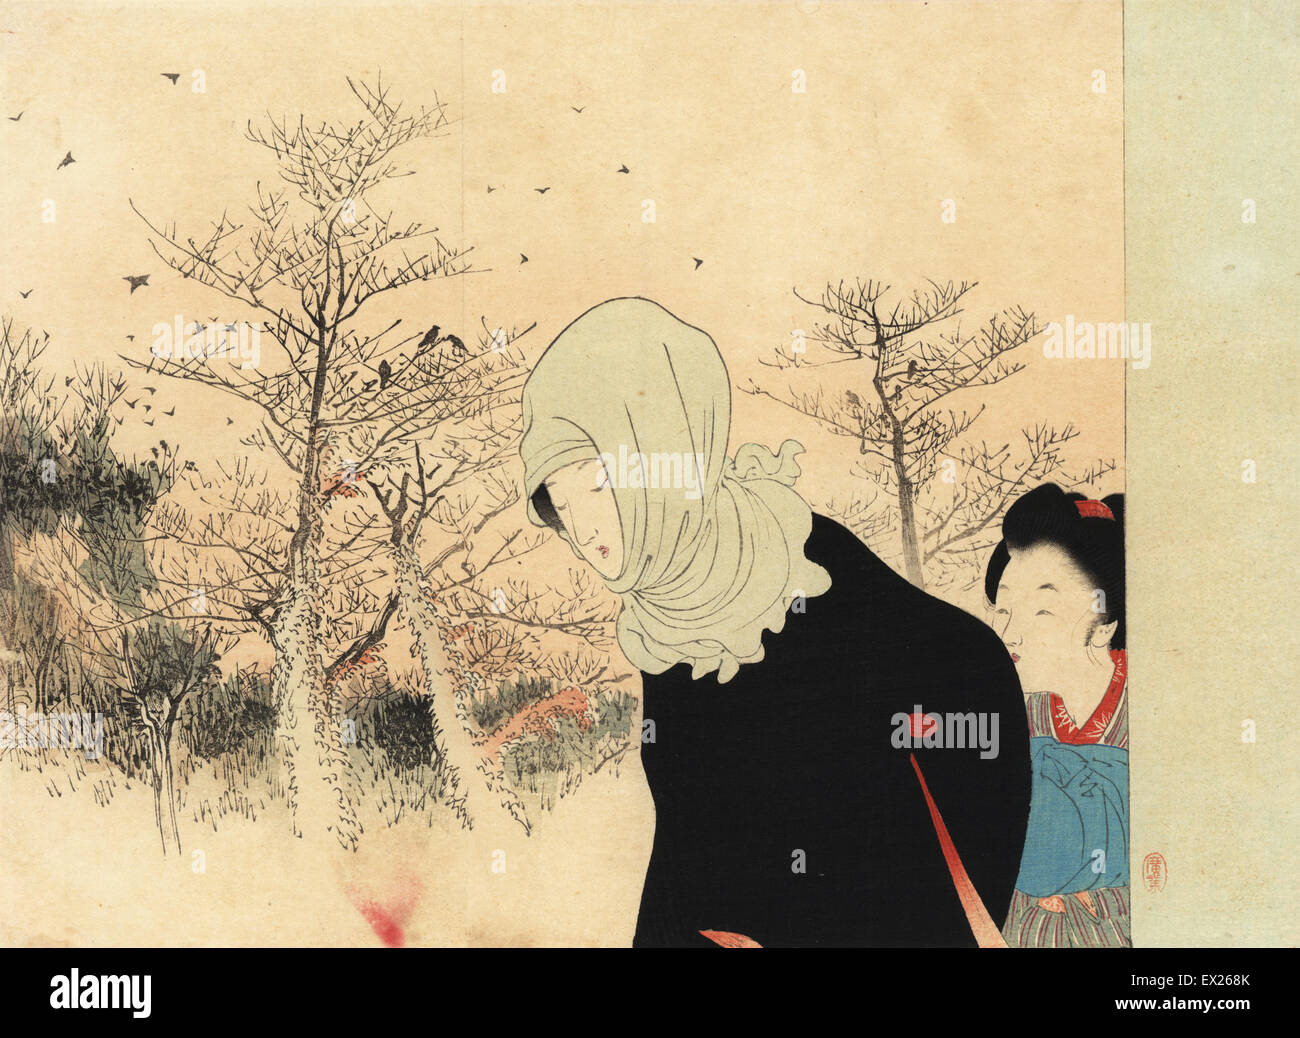 Japanese woman in scarf and kimono with maid walking in a wintry landscape with bare trees. Woodblock ukiyo-e print - Stock Image